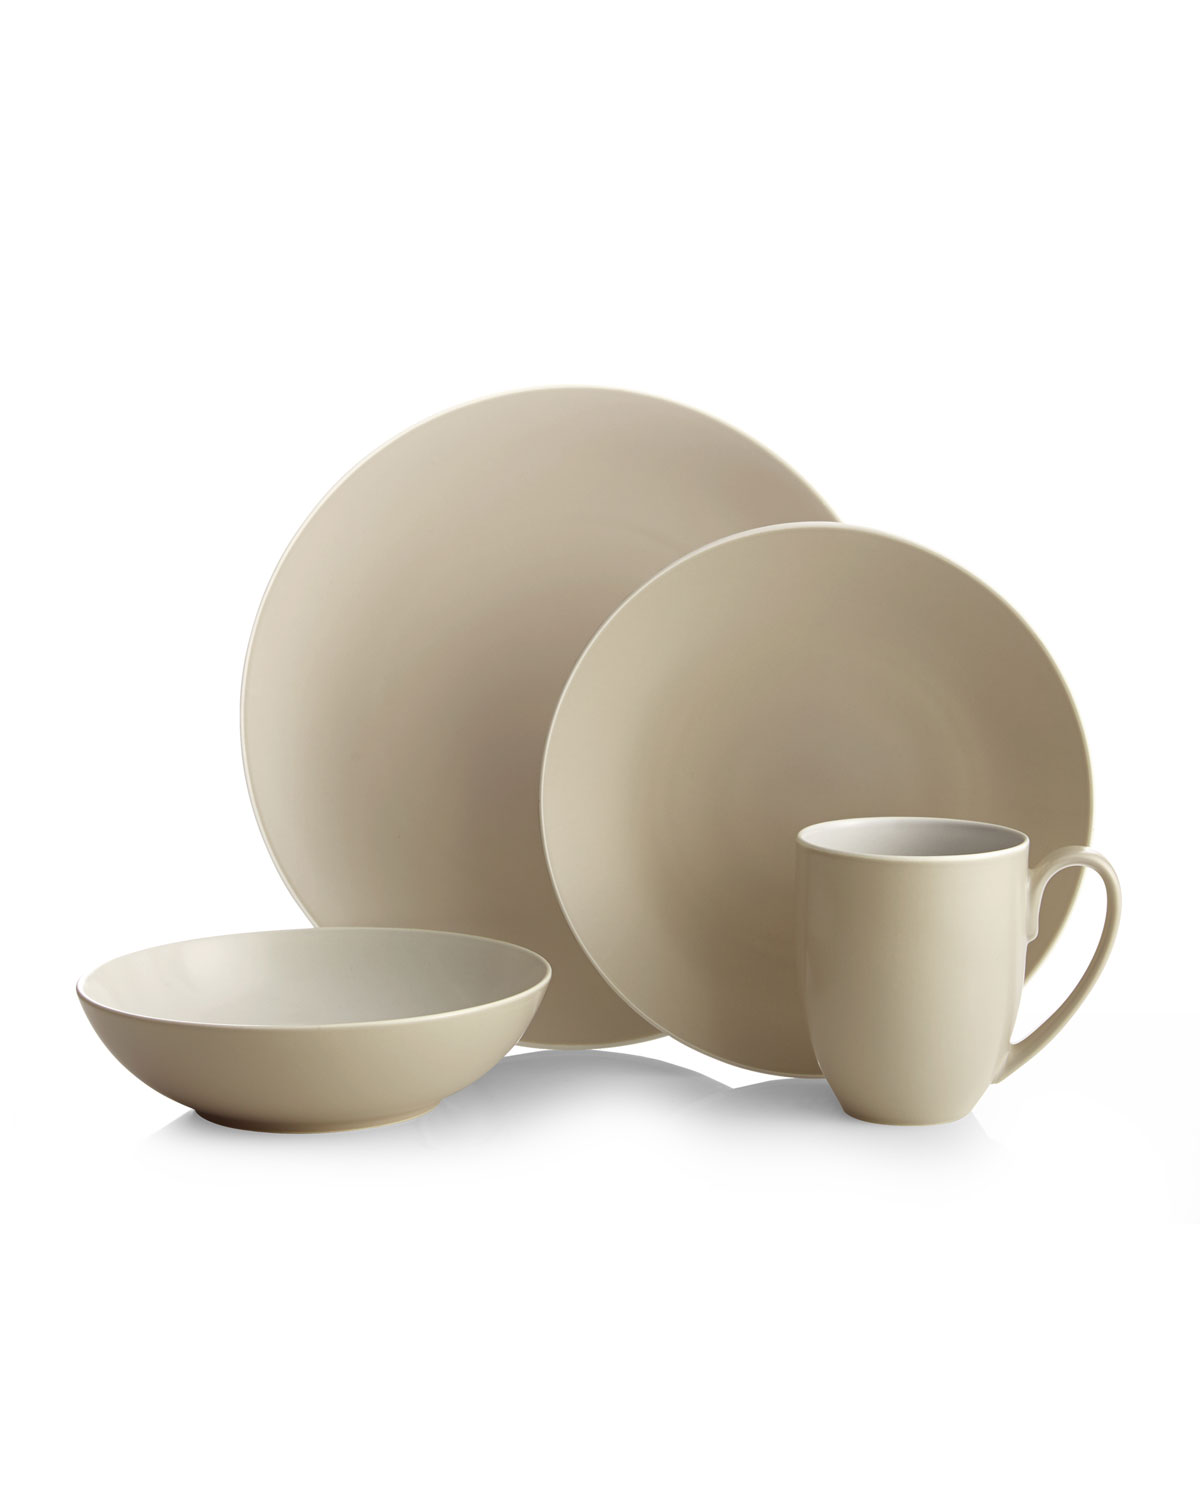 Nambe Pop Collection By Robin Levien 4-piece Place Setting In Ocean